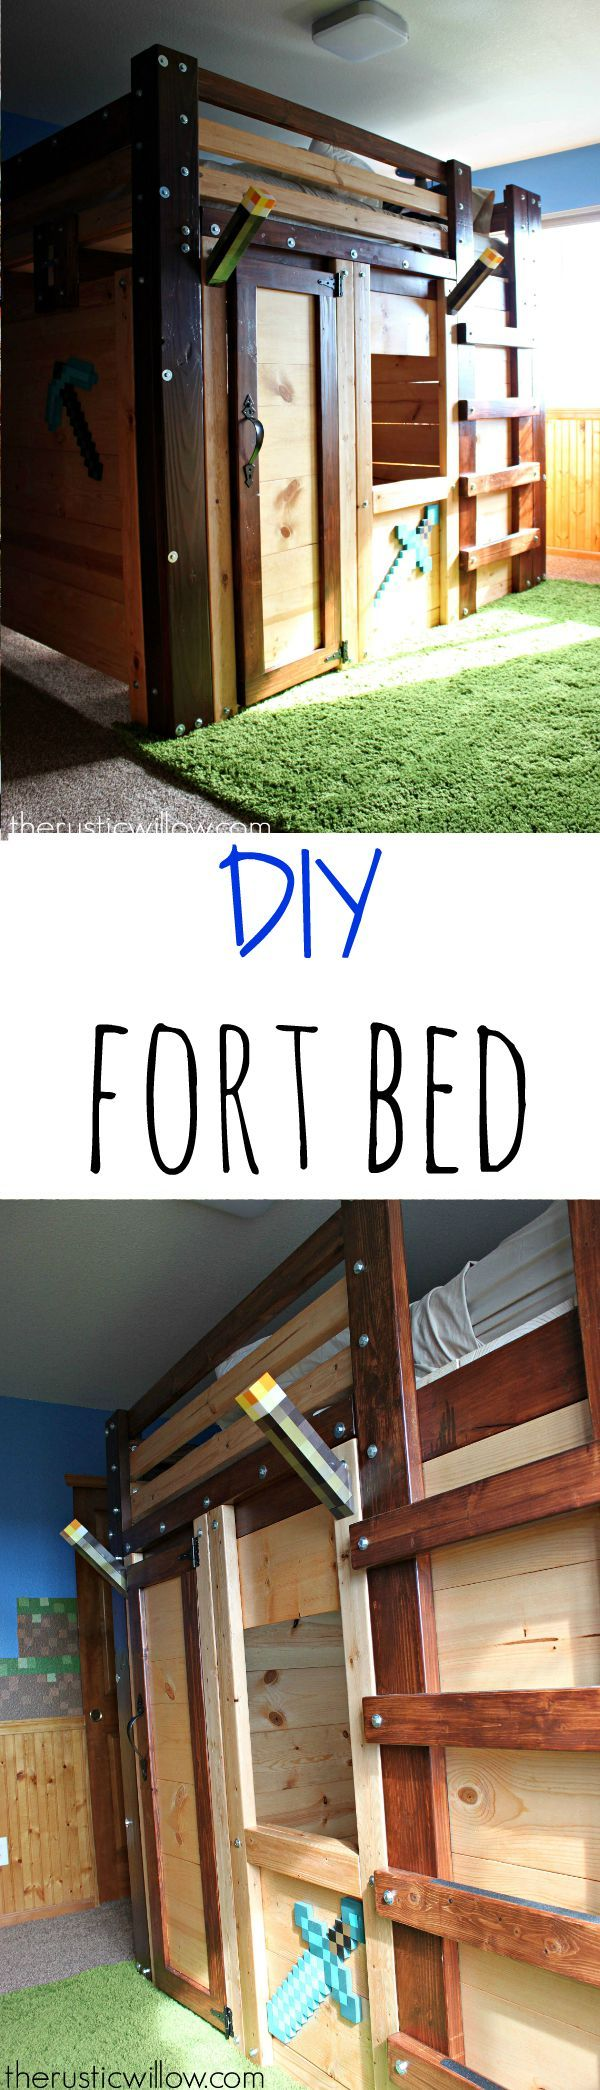 cool bunk bed fort. DIY Fort Bed For A Children\u0027s Dream Room   Therusticwillow.com · Bunk FortDiy Childrens Cool